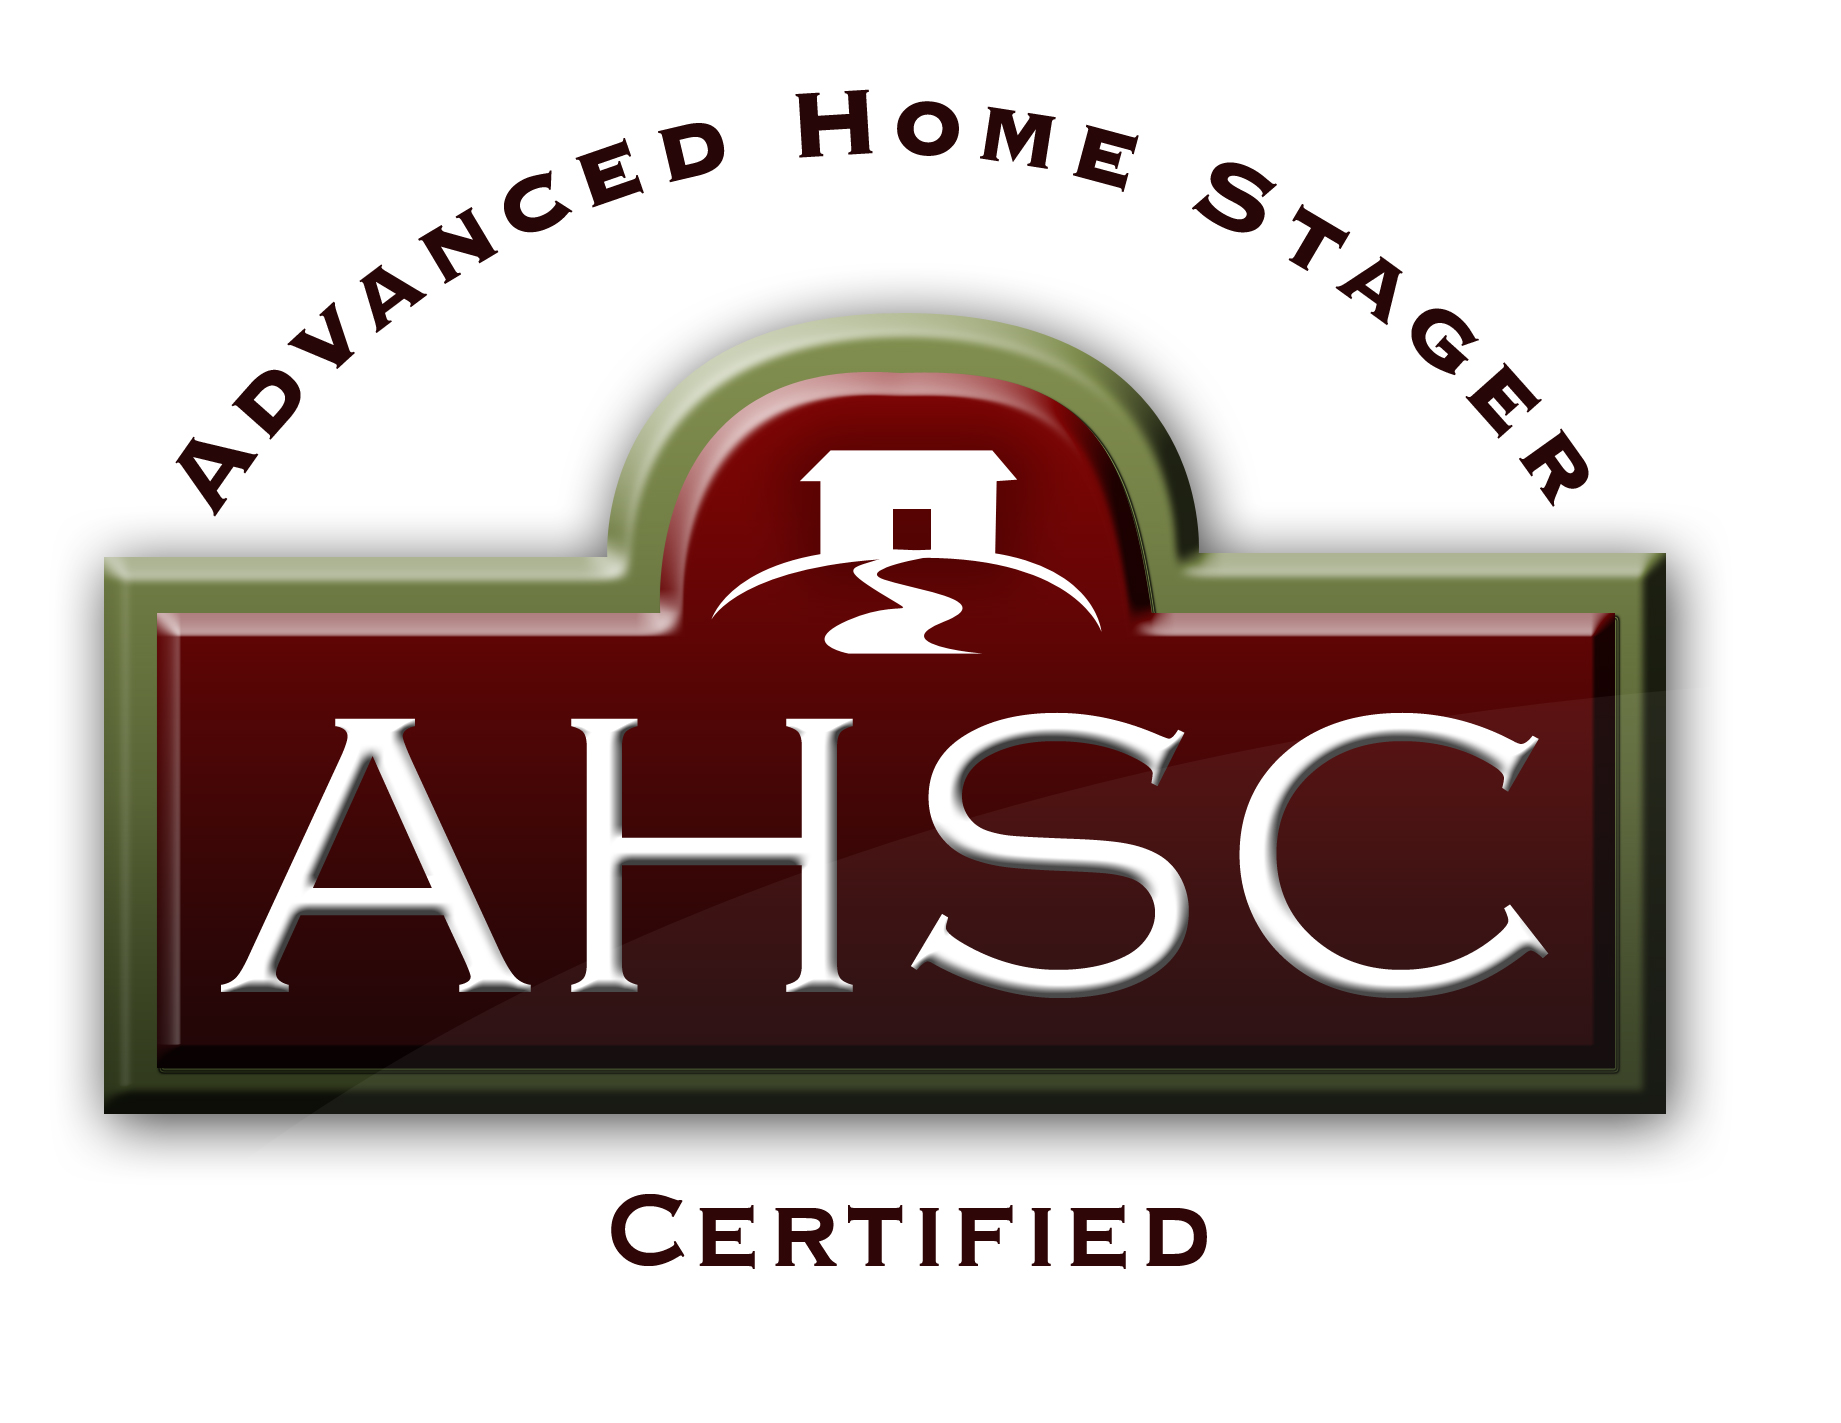 The academy of home staging announces fall 2013 special for Advanced home